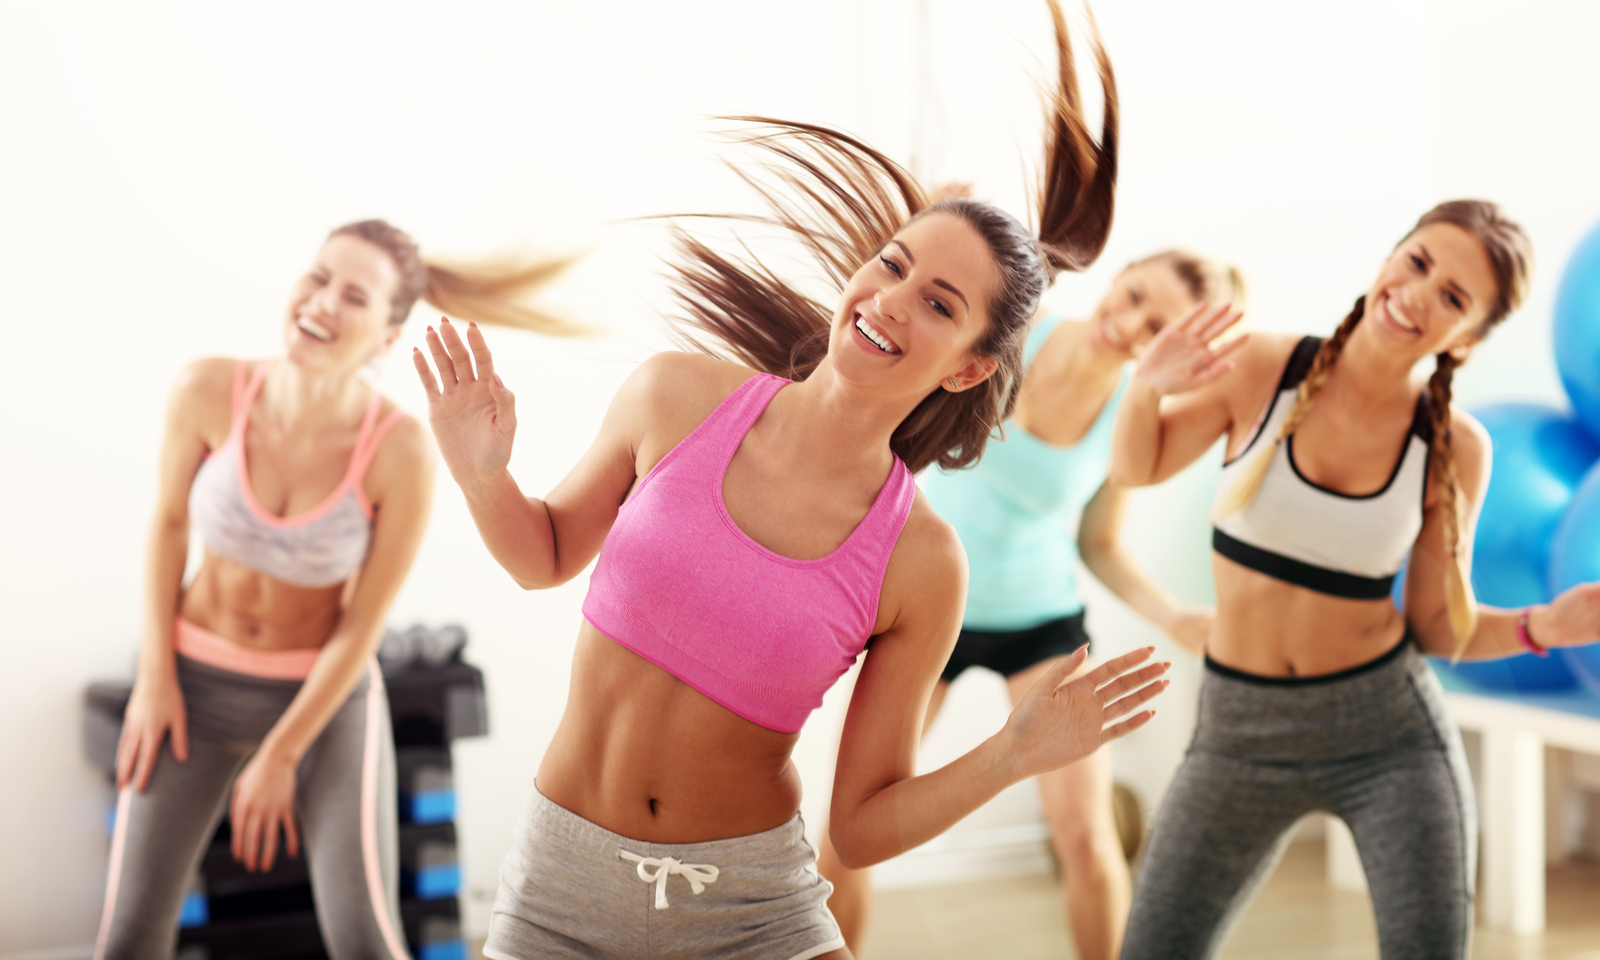 dance, zumba, group class, fitness